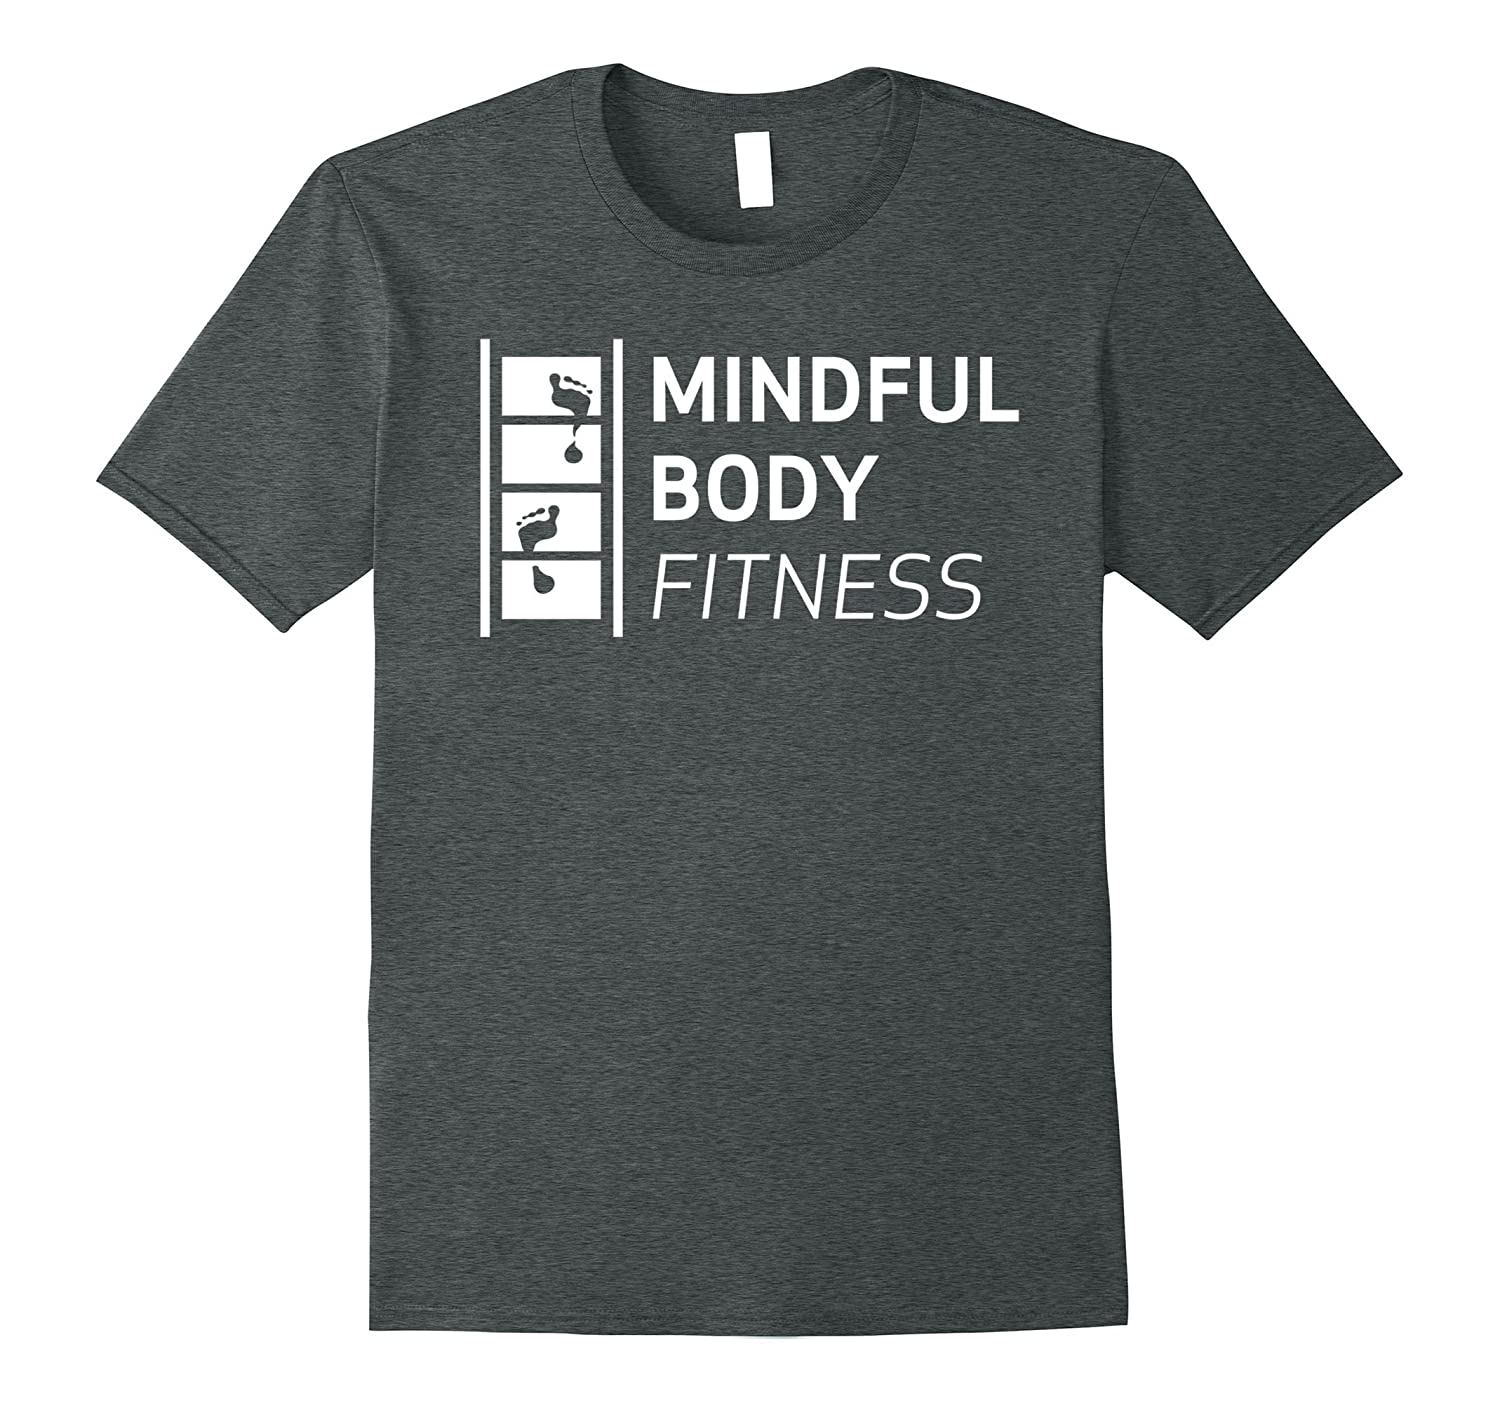 Mindful Body Fitness T Shirt Standard-Awarplus